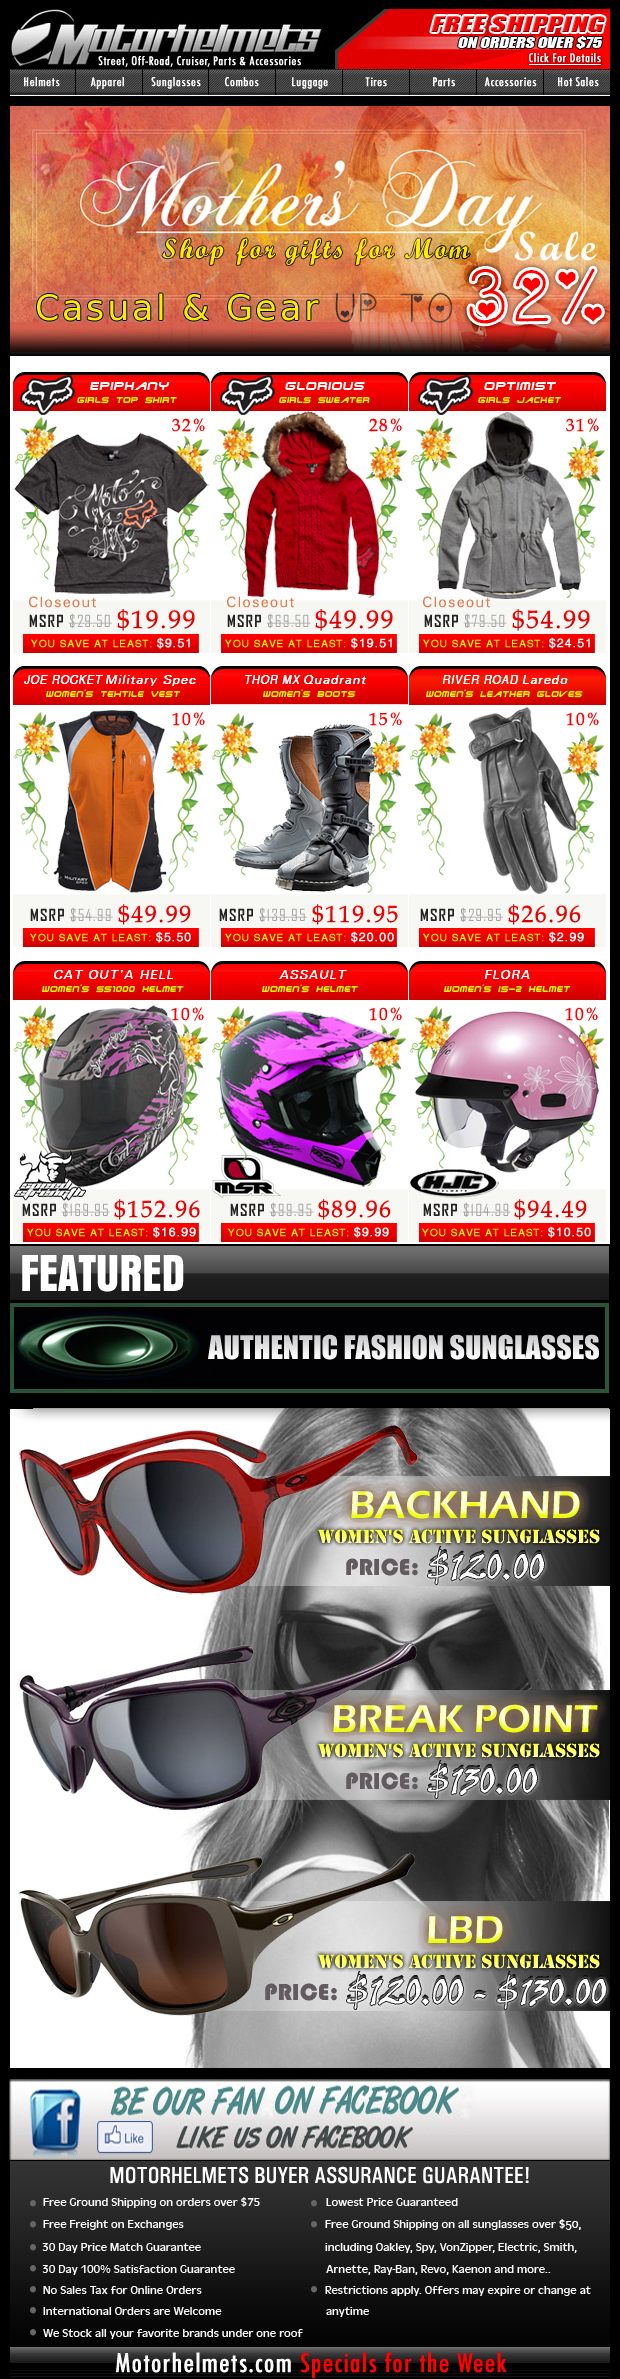 Mother's Day Specials...Up to 32% Off on Premium Items from Fox, MSR, HJC and more!